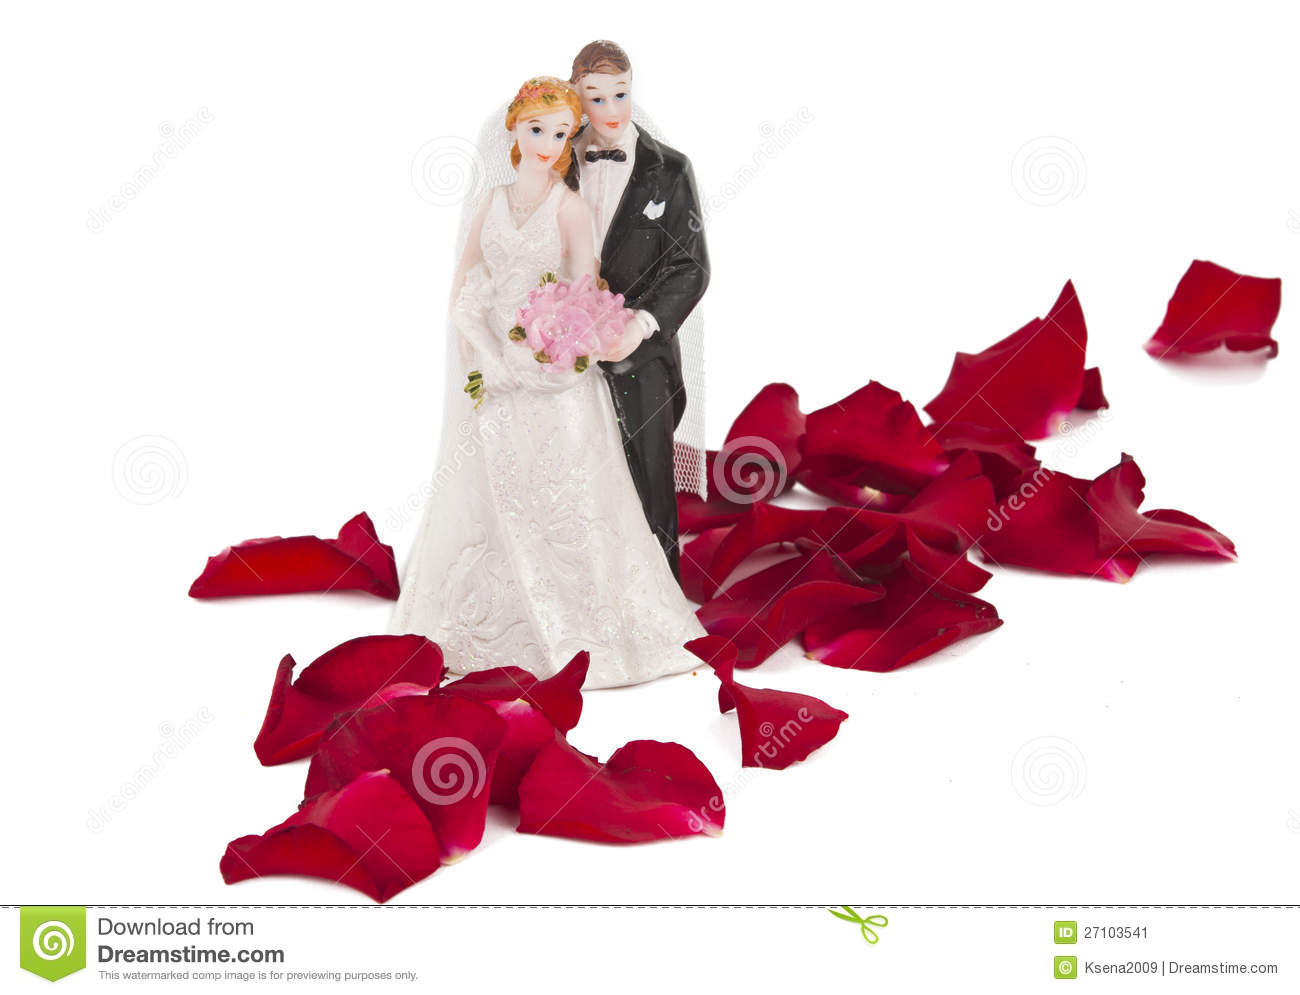 A wedding couple made of plastic